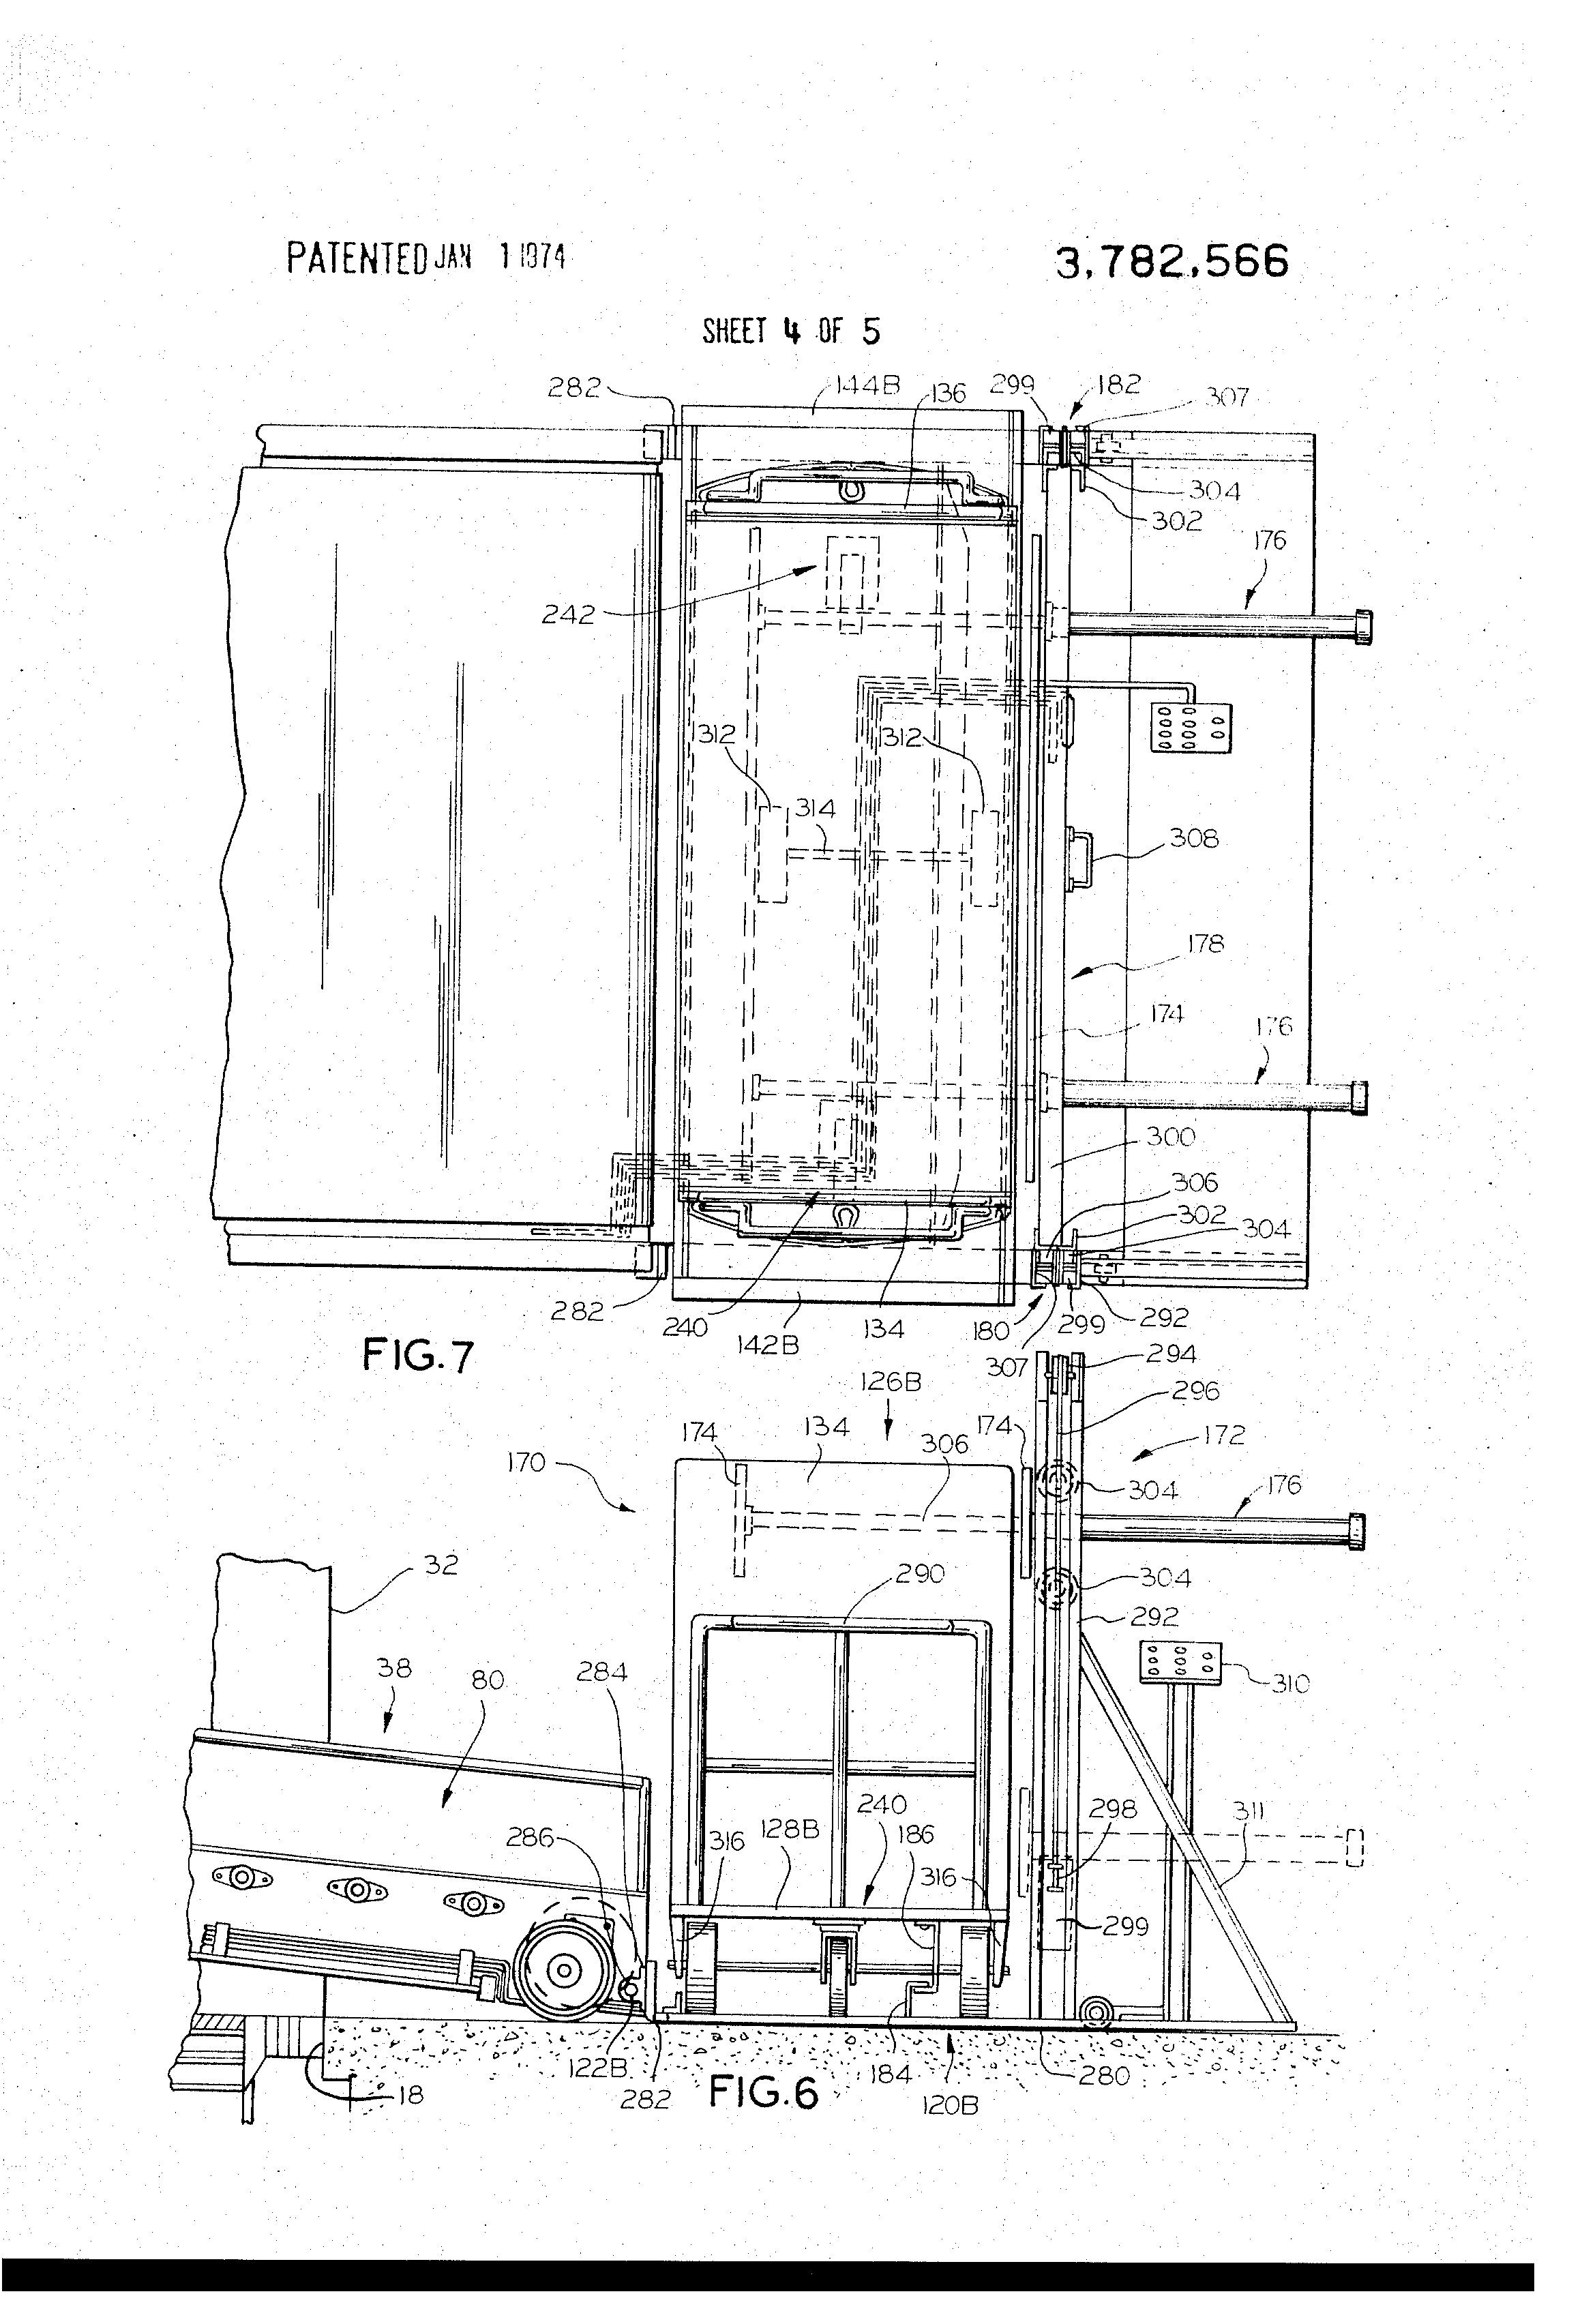 Patent Us3782566 Nutting Truck Unloading Arrangement For Mail Bag. Patent Drawing. Wiring. I574 Tractor Wiring Schematics At Scoala.co